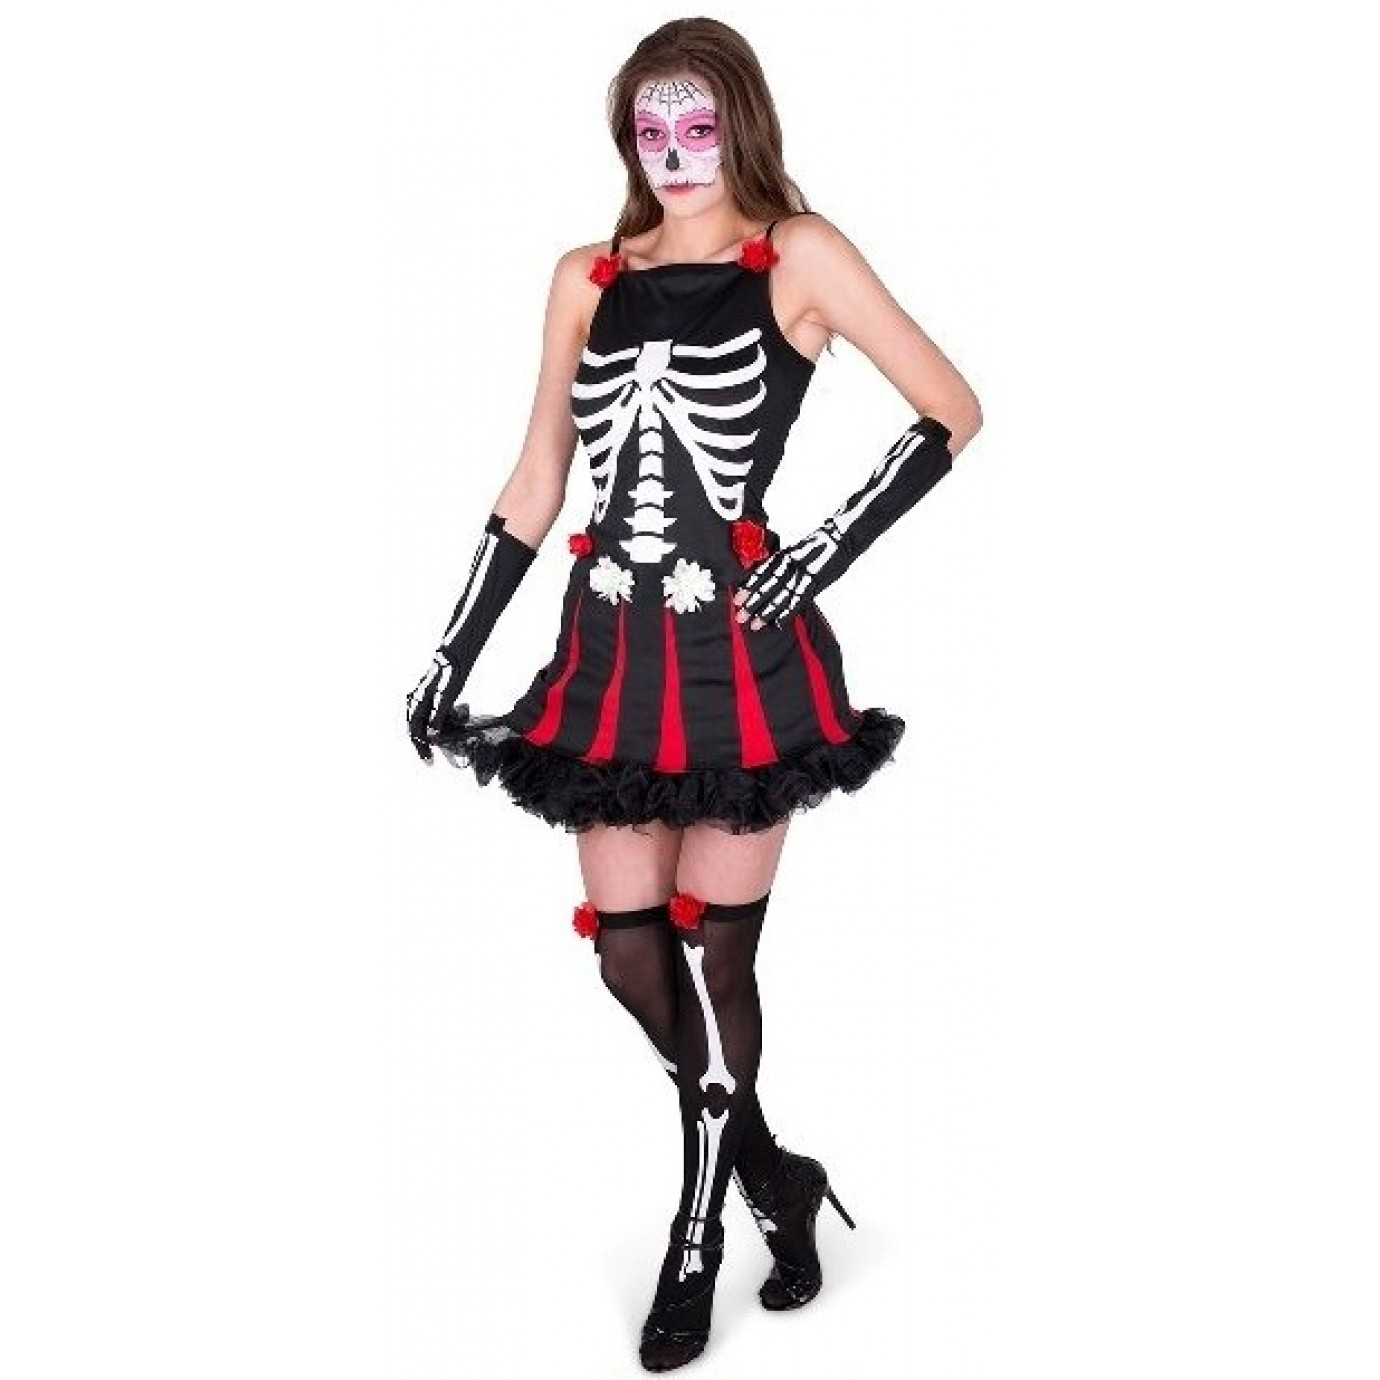 eb44fe5e946 Adult Costume - Karnival, Day of the Dead Red